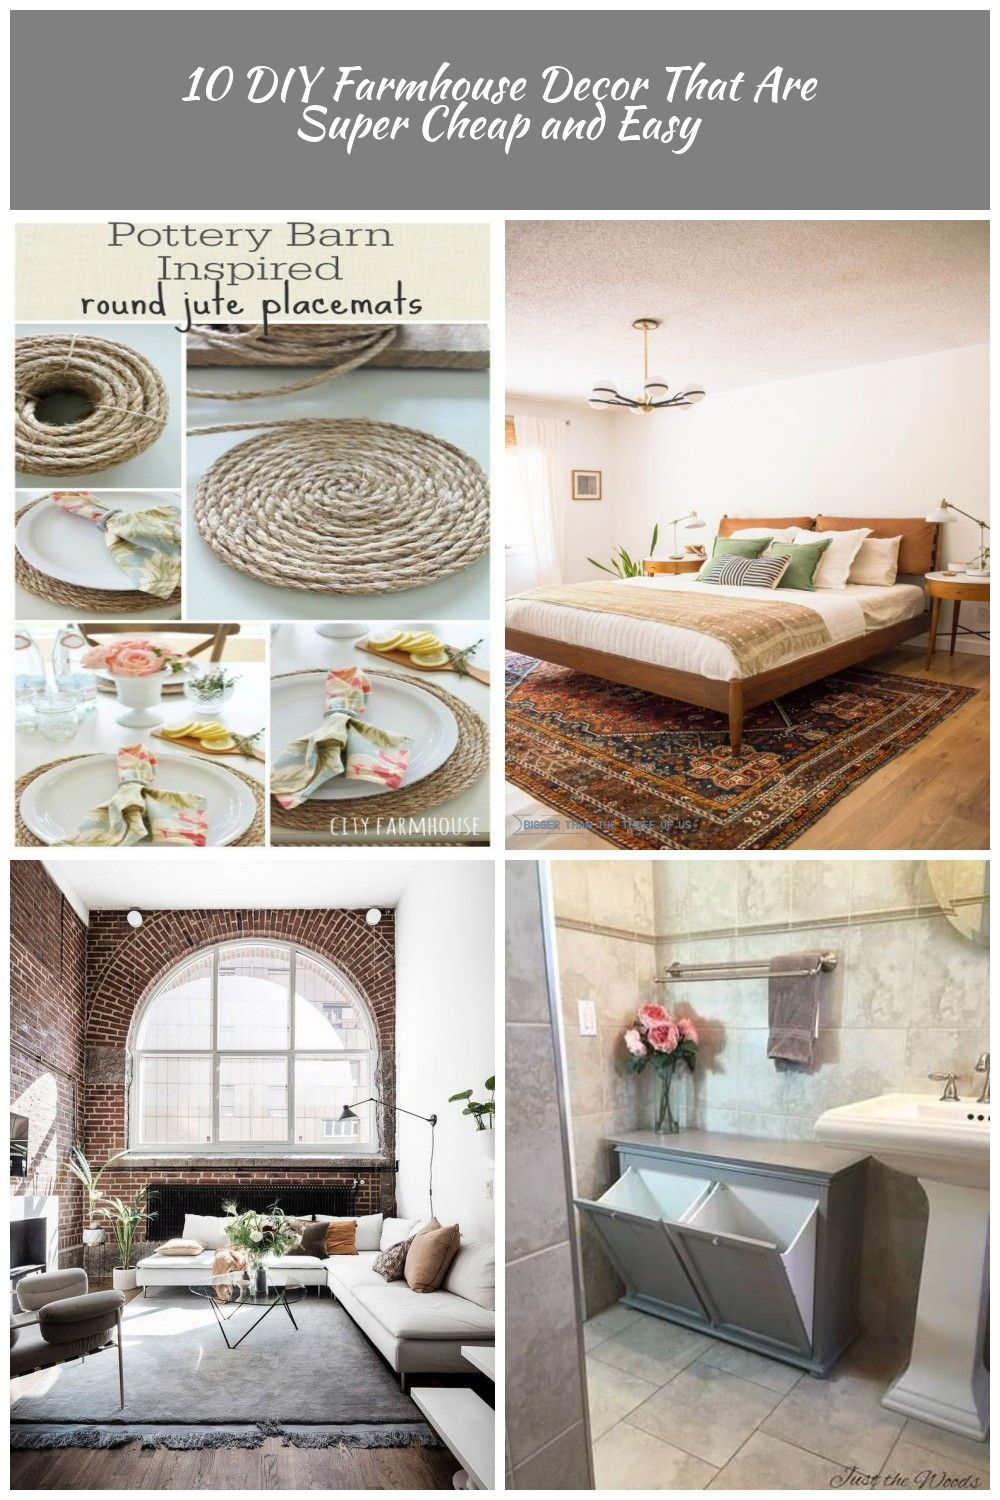 Super Easy And Cheap Diy Farmhouse Decor Ideas For Your Home Pottery Barn Inspired Round Jute Placemats And Others Diy Diy Home Decor Sandales